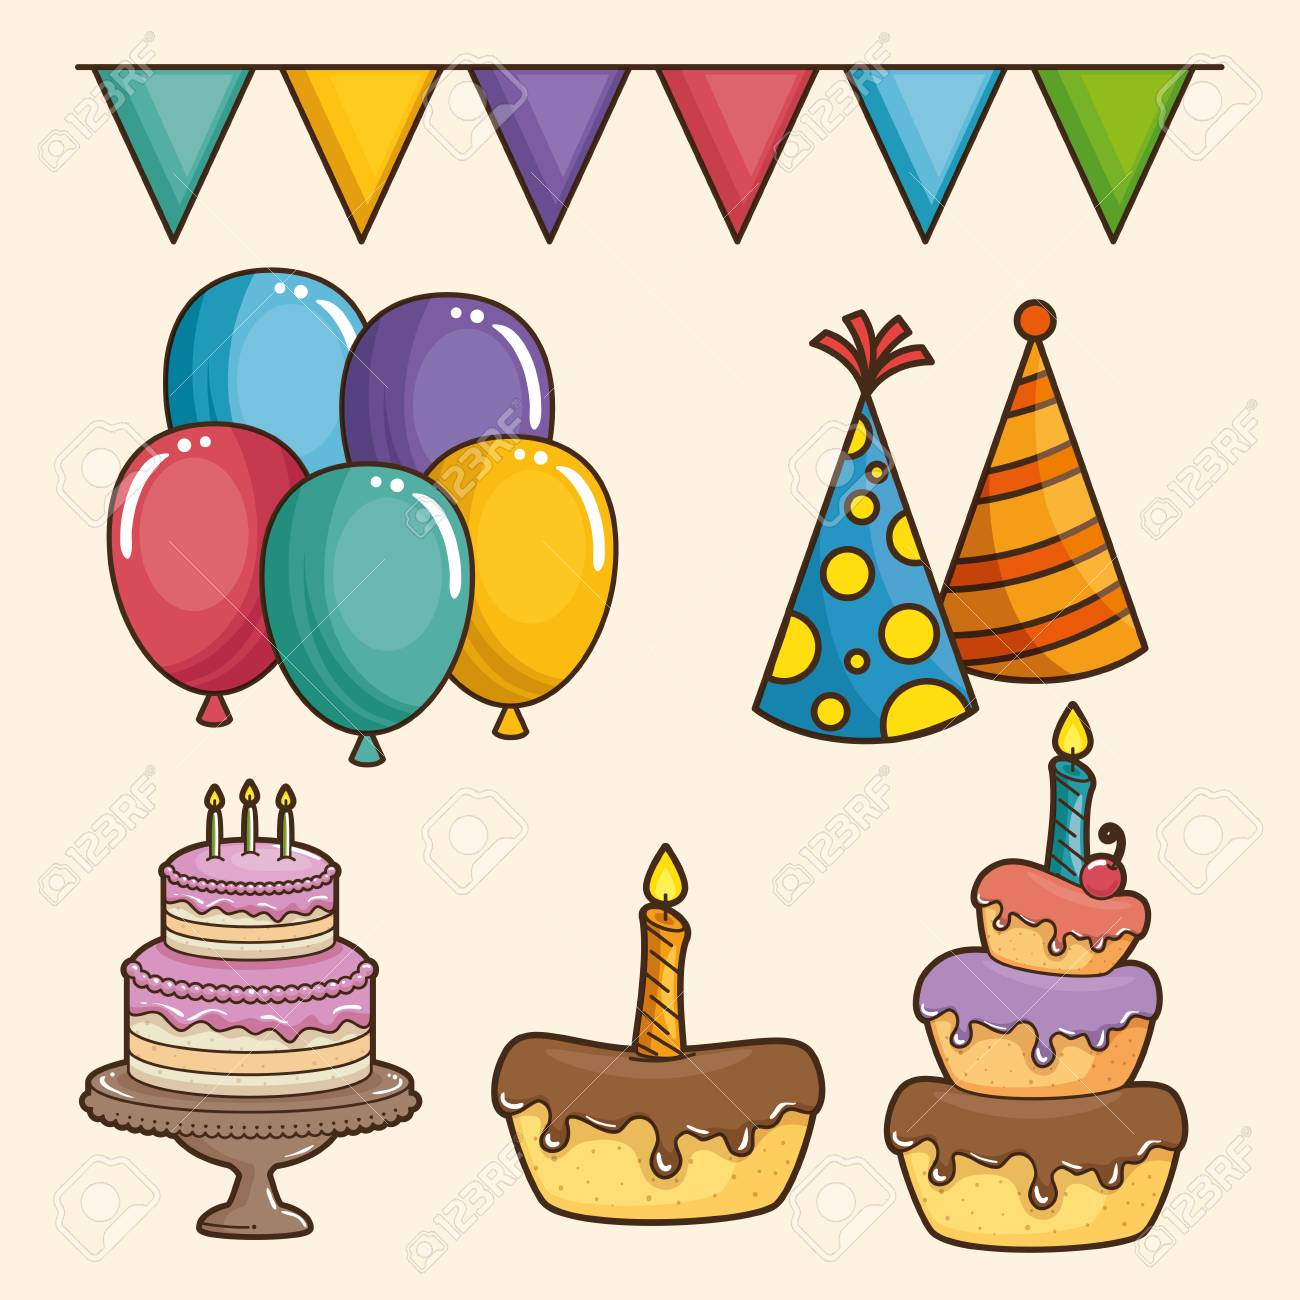 birthday celebration theme ; 84709587-cake-balloons-pennant-and-party-hat-of-happy-birthday-and-celebration-theme-vector-illustration